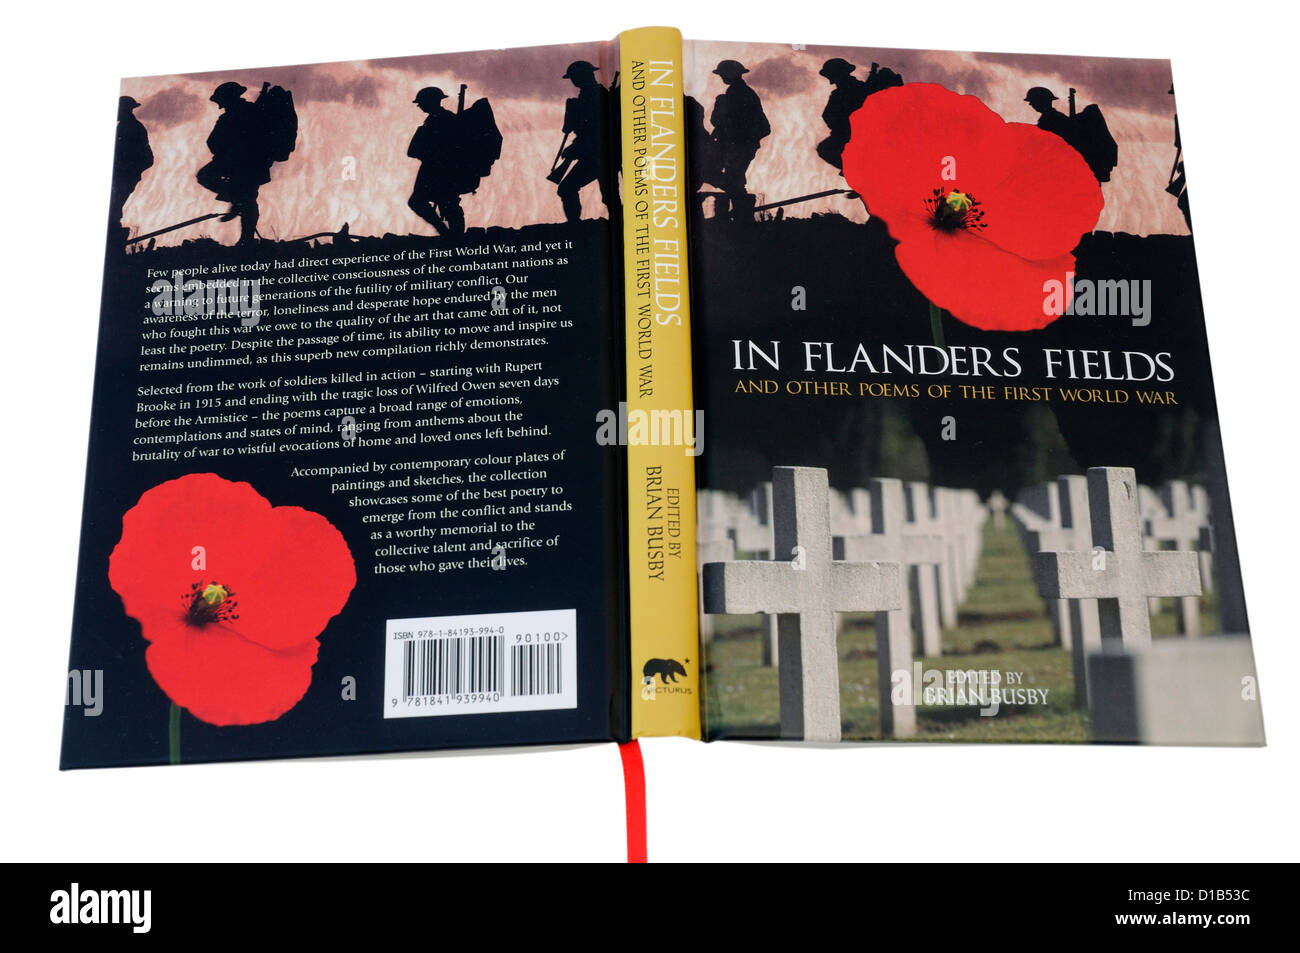 In Flanders Fields, an anthology of First World War poetry - Stock Image